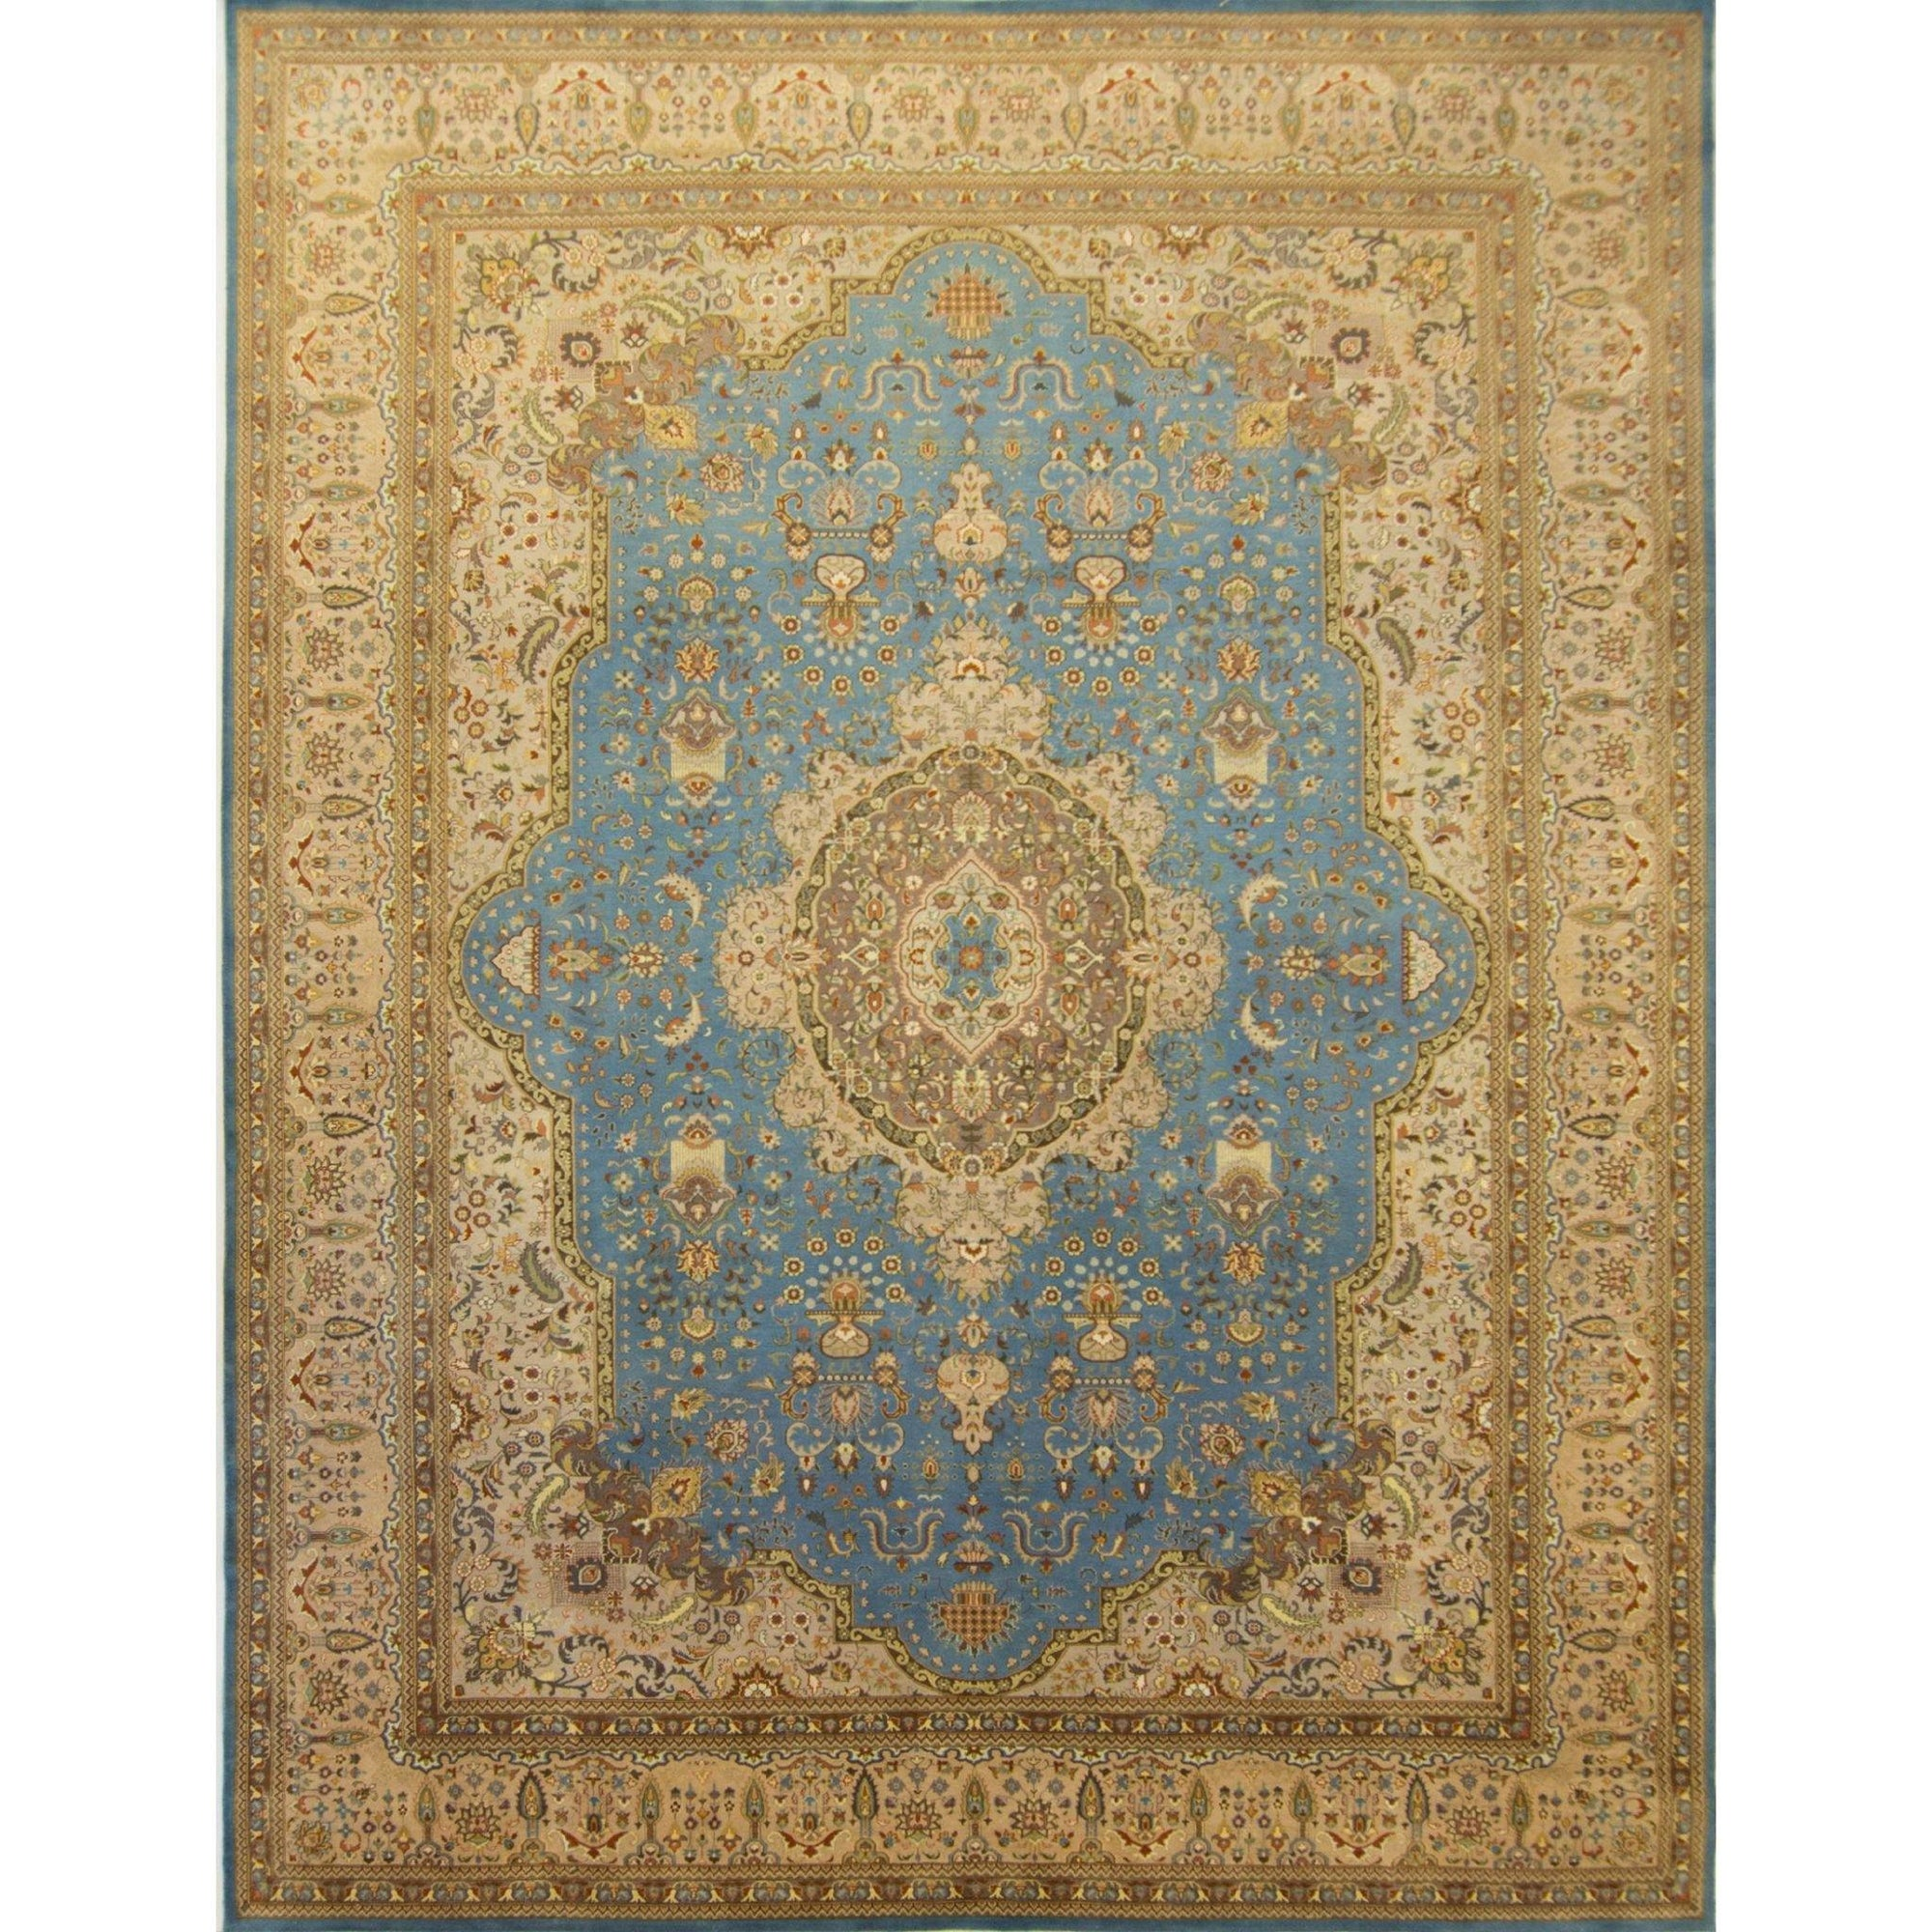 Fine Wool & Silk Hand-knotted Kerman Rug 309cm x 437cm Persian-Rug | House-of-Haghi | NewMarket | Auckland | NZ | Handmade Persian Rugs | Hand Knotted Persian Rugs